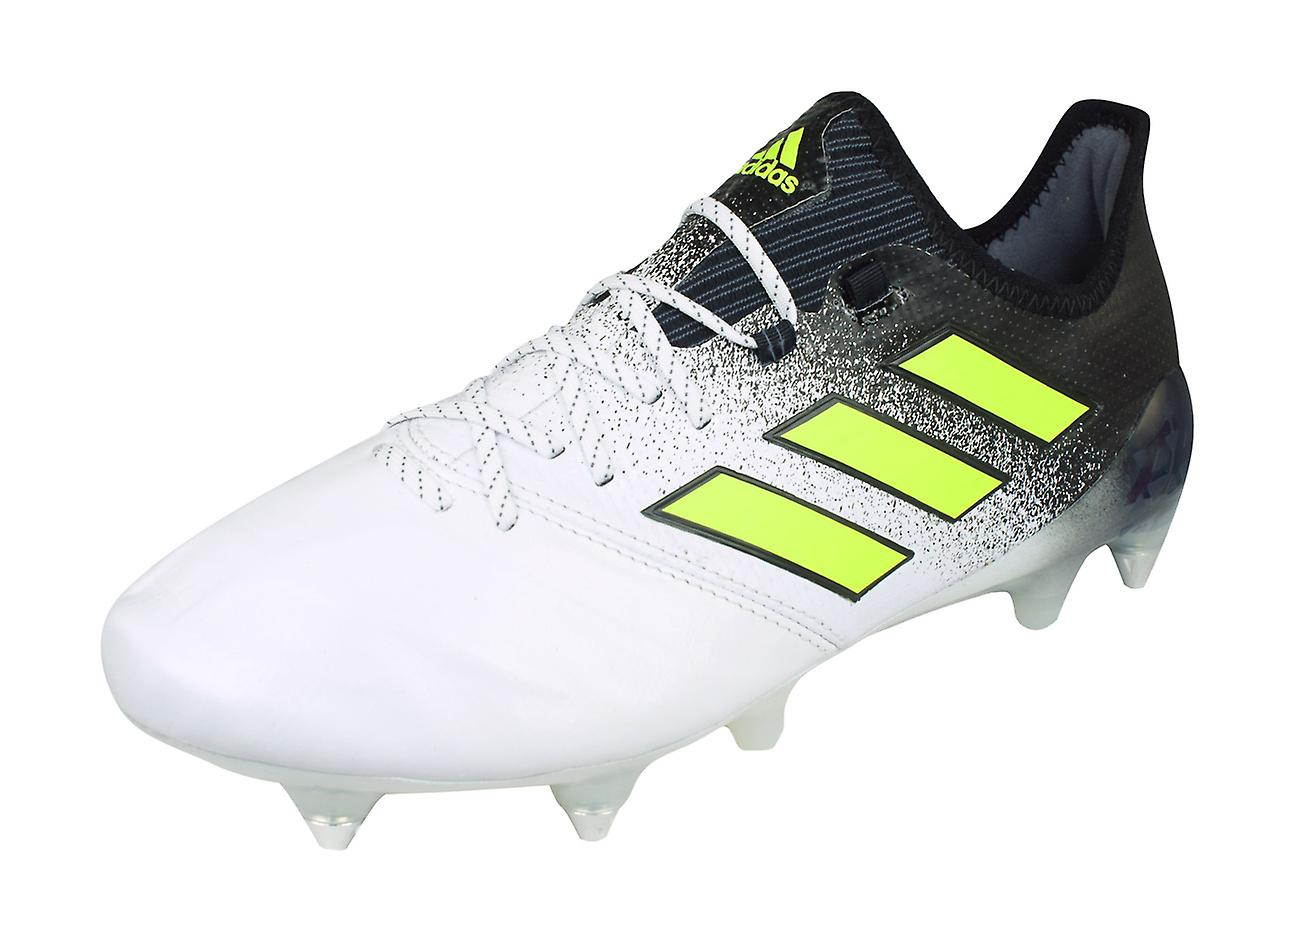 premium selection 45ab0 e9db1 adidas Ace 17.1 SG Leather Mens Soft Ground Football Boots - White and Black